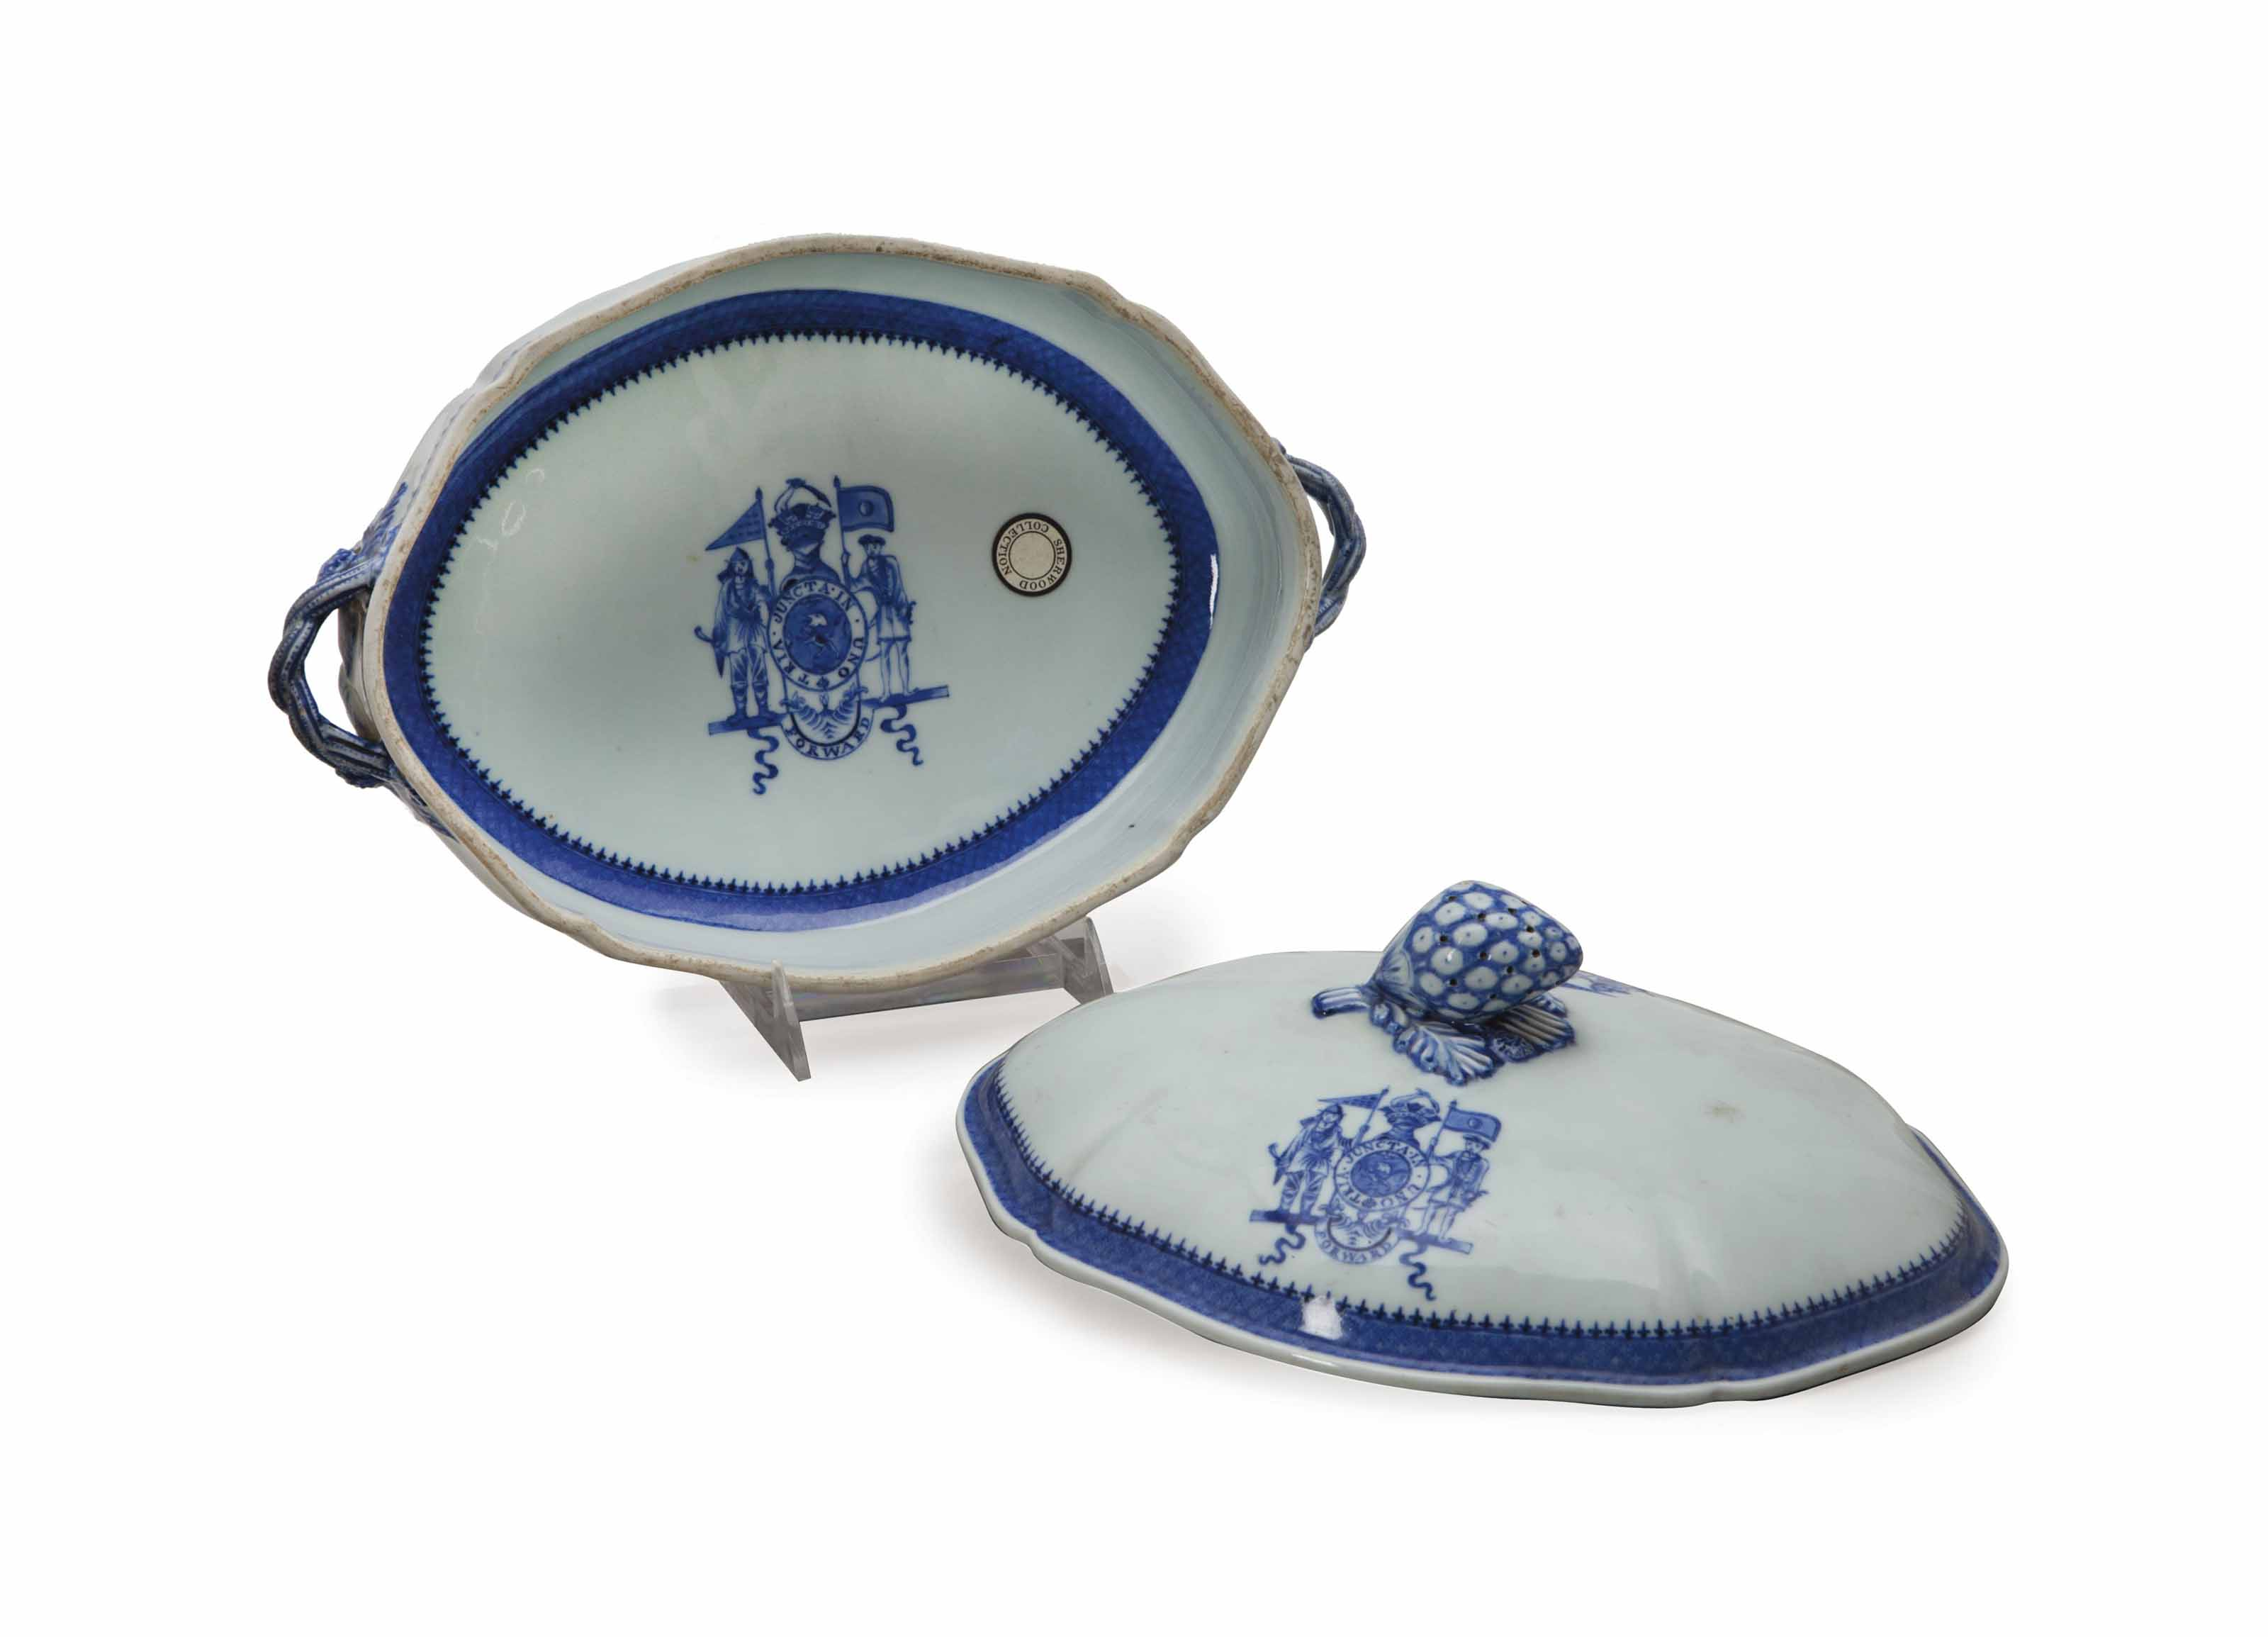 A CHINESE EXPORT BLUE AND WHITE ARMORIAL VEGETABLE TUREEN AND COVER,